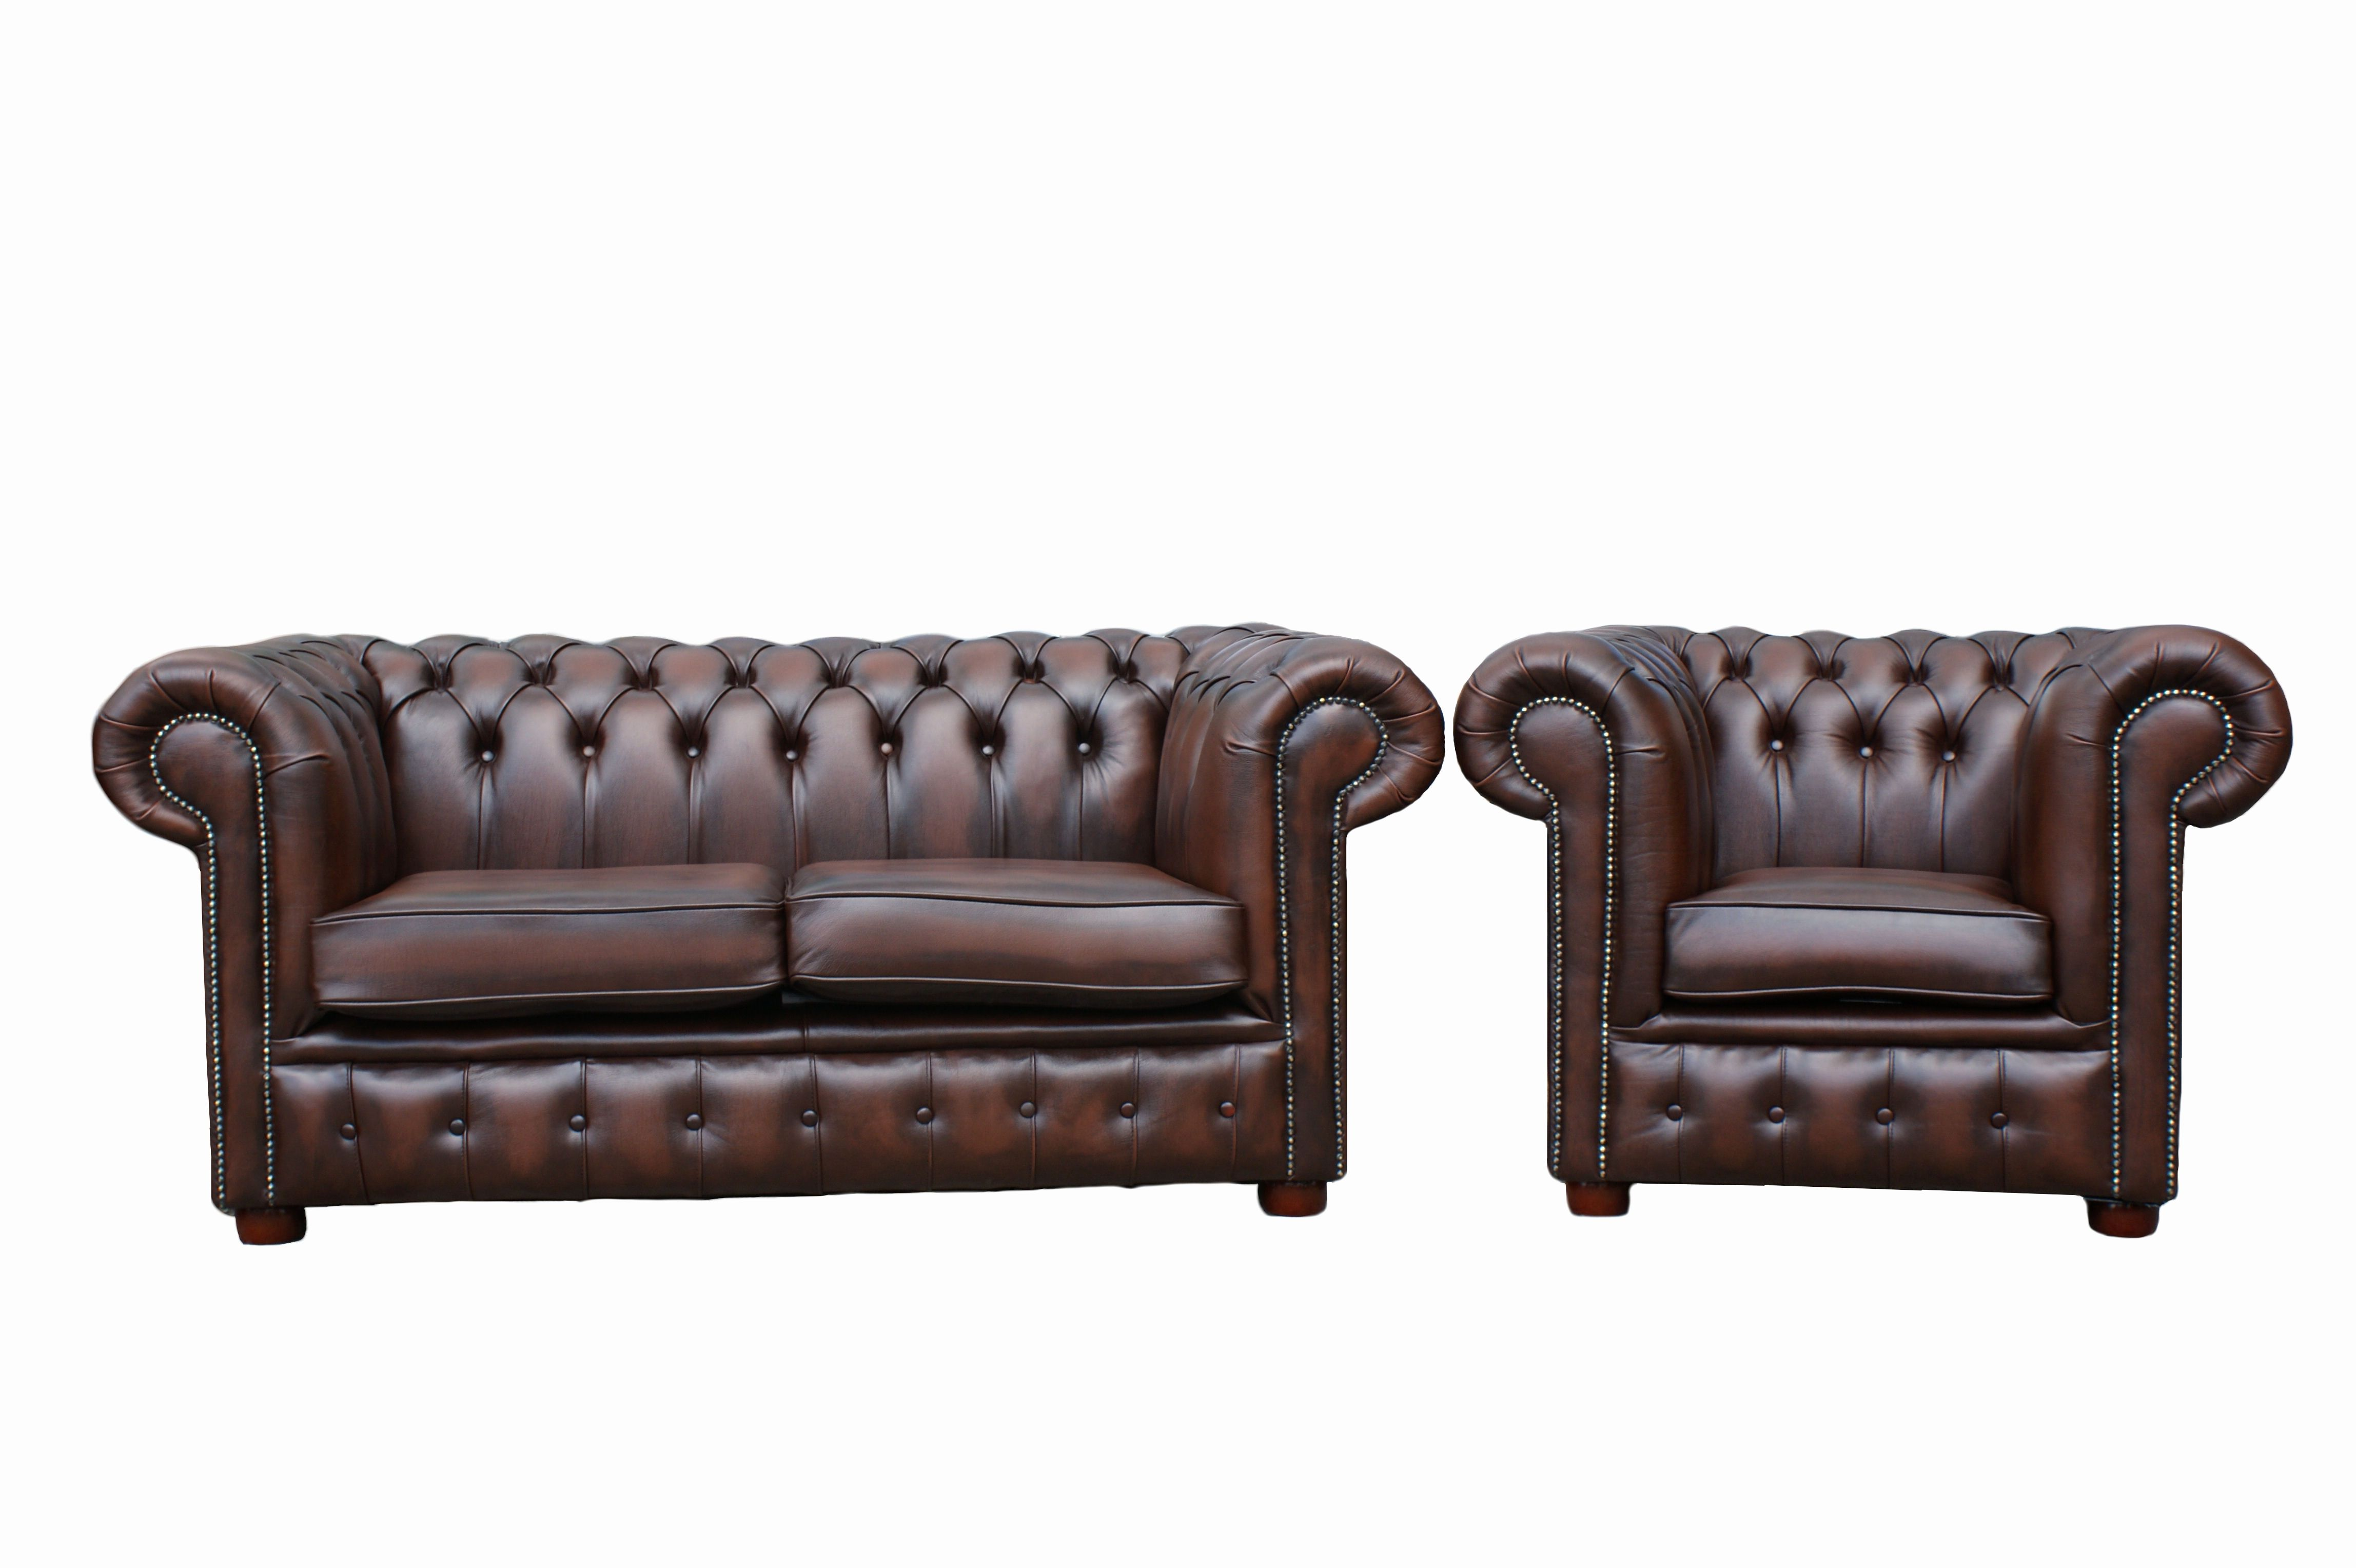 Unique Leather Office Furniture Sofa Photograpy Expensive Leather Sofa Okaycreations Leather Office Furniture Sofa Furniture Leather Sofa